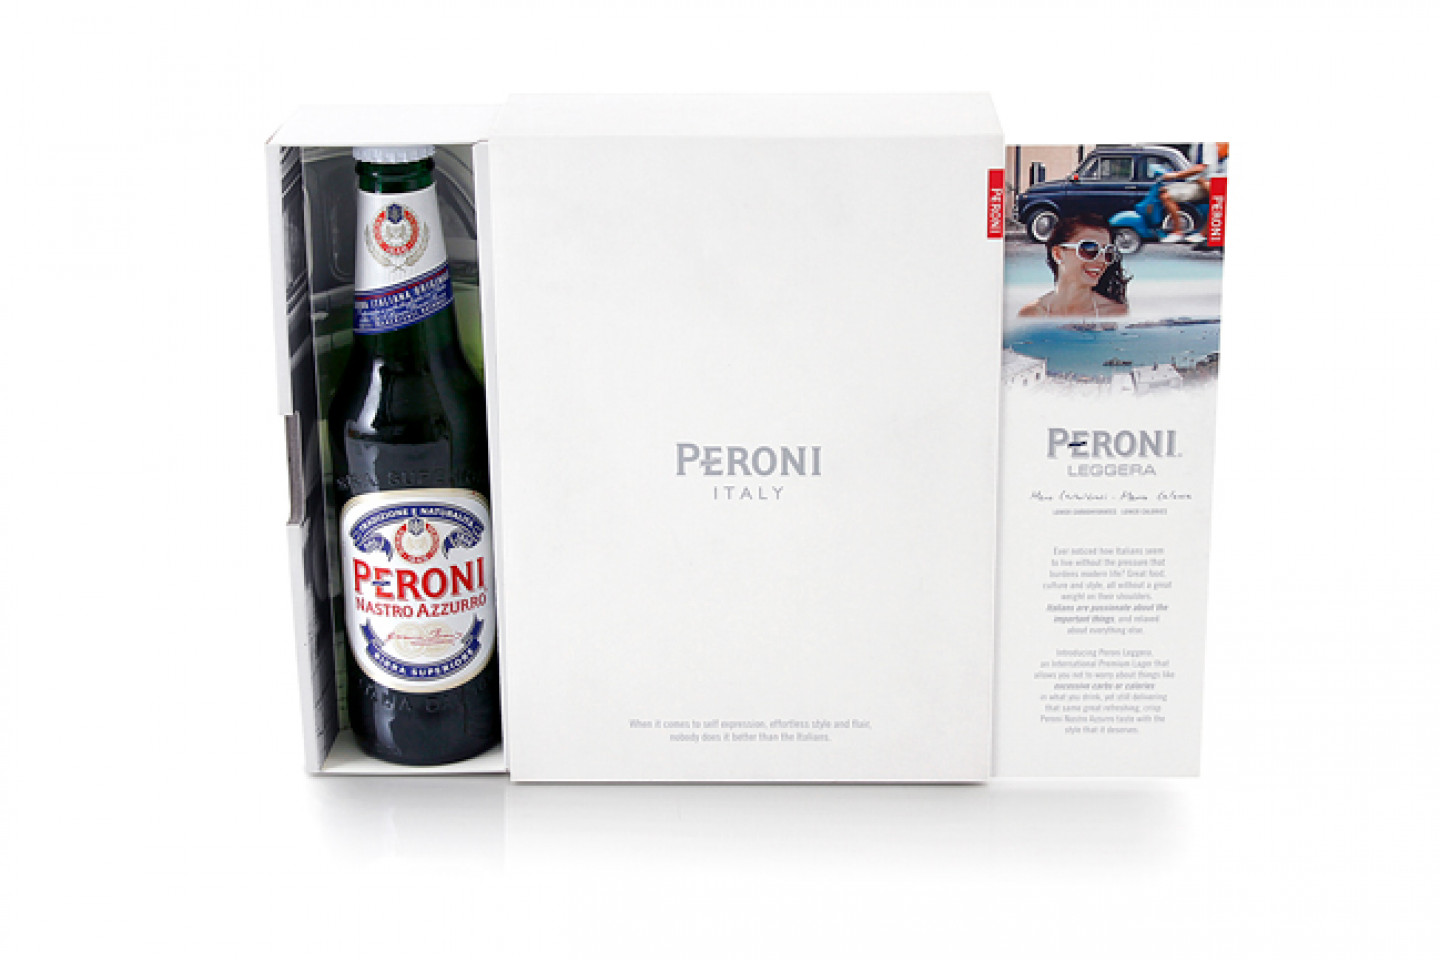 Peroni - Promotional Bottle Set